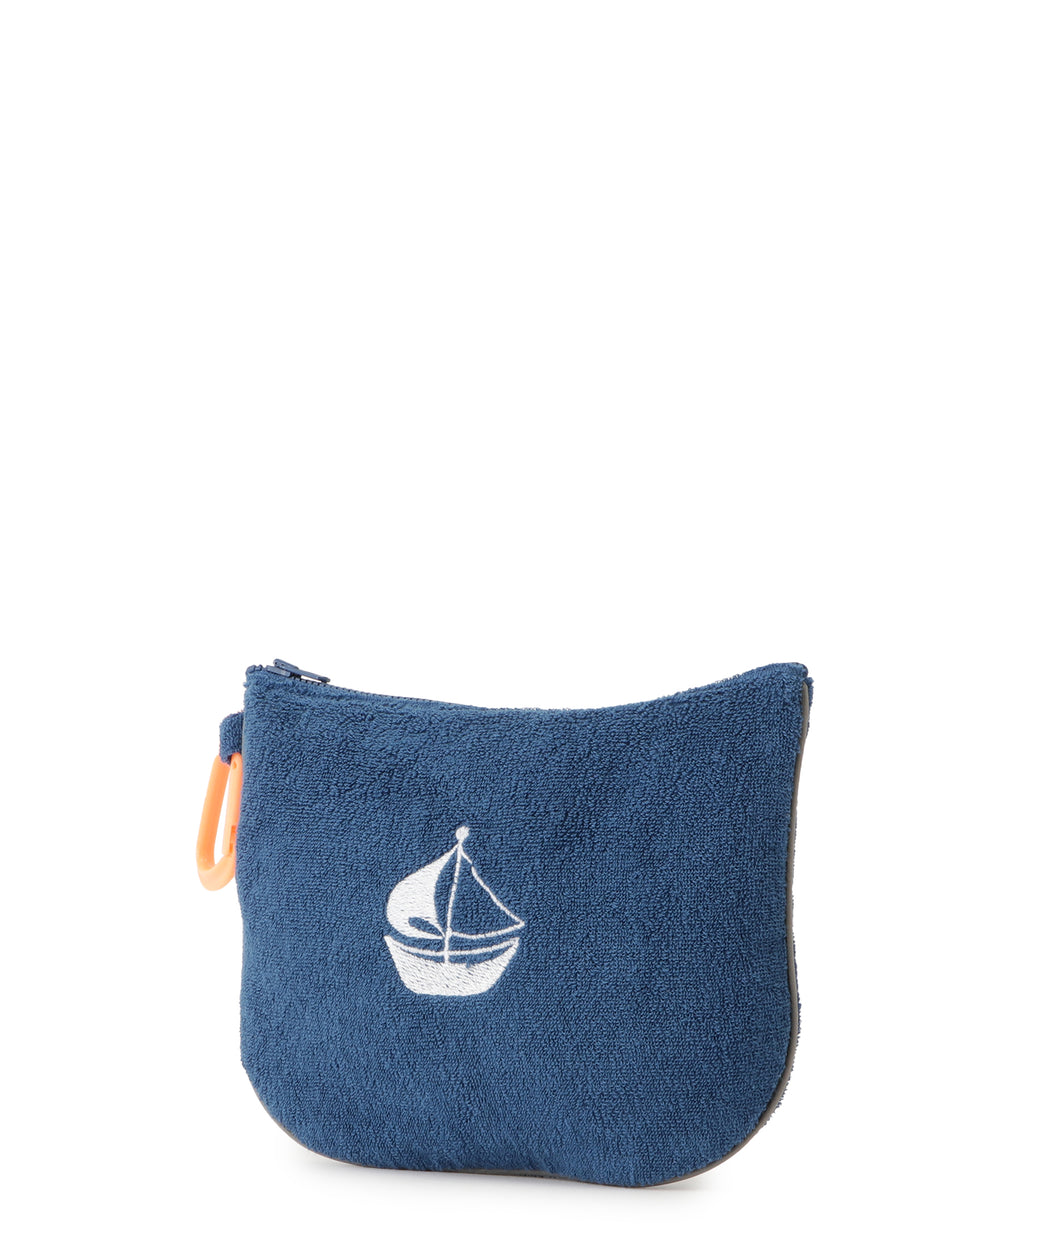 Pile fabric tote & pouch